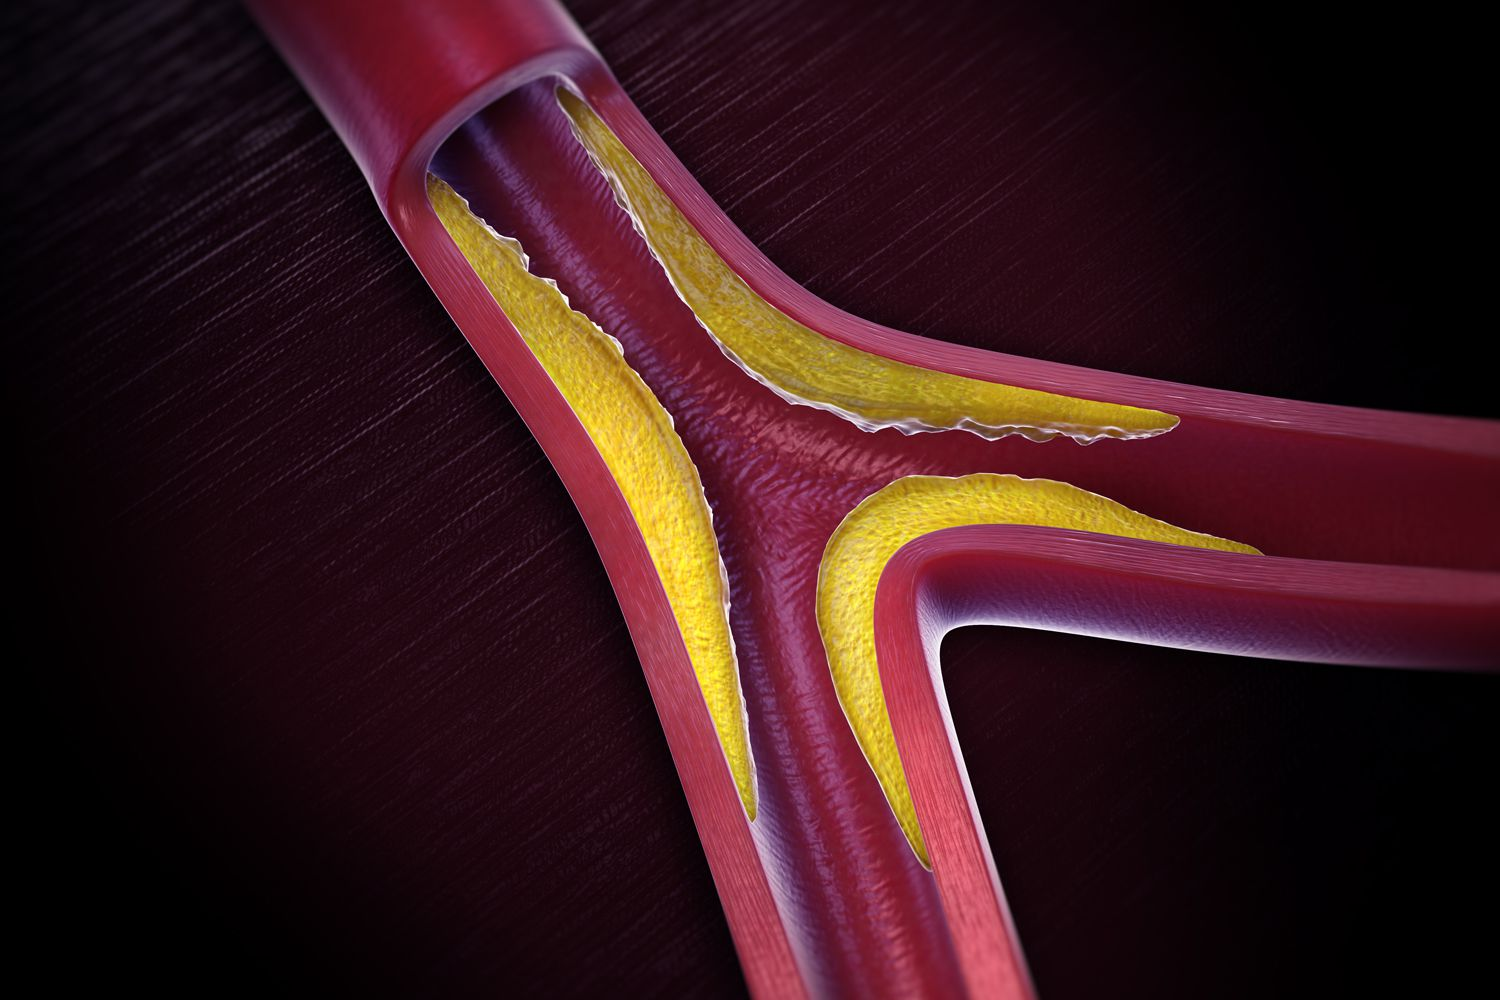 Atherosclerosis, caused by cholesterol